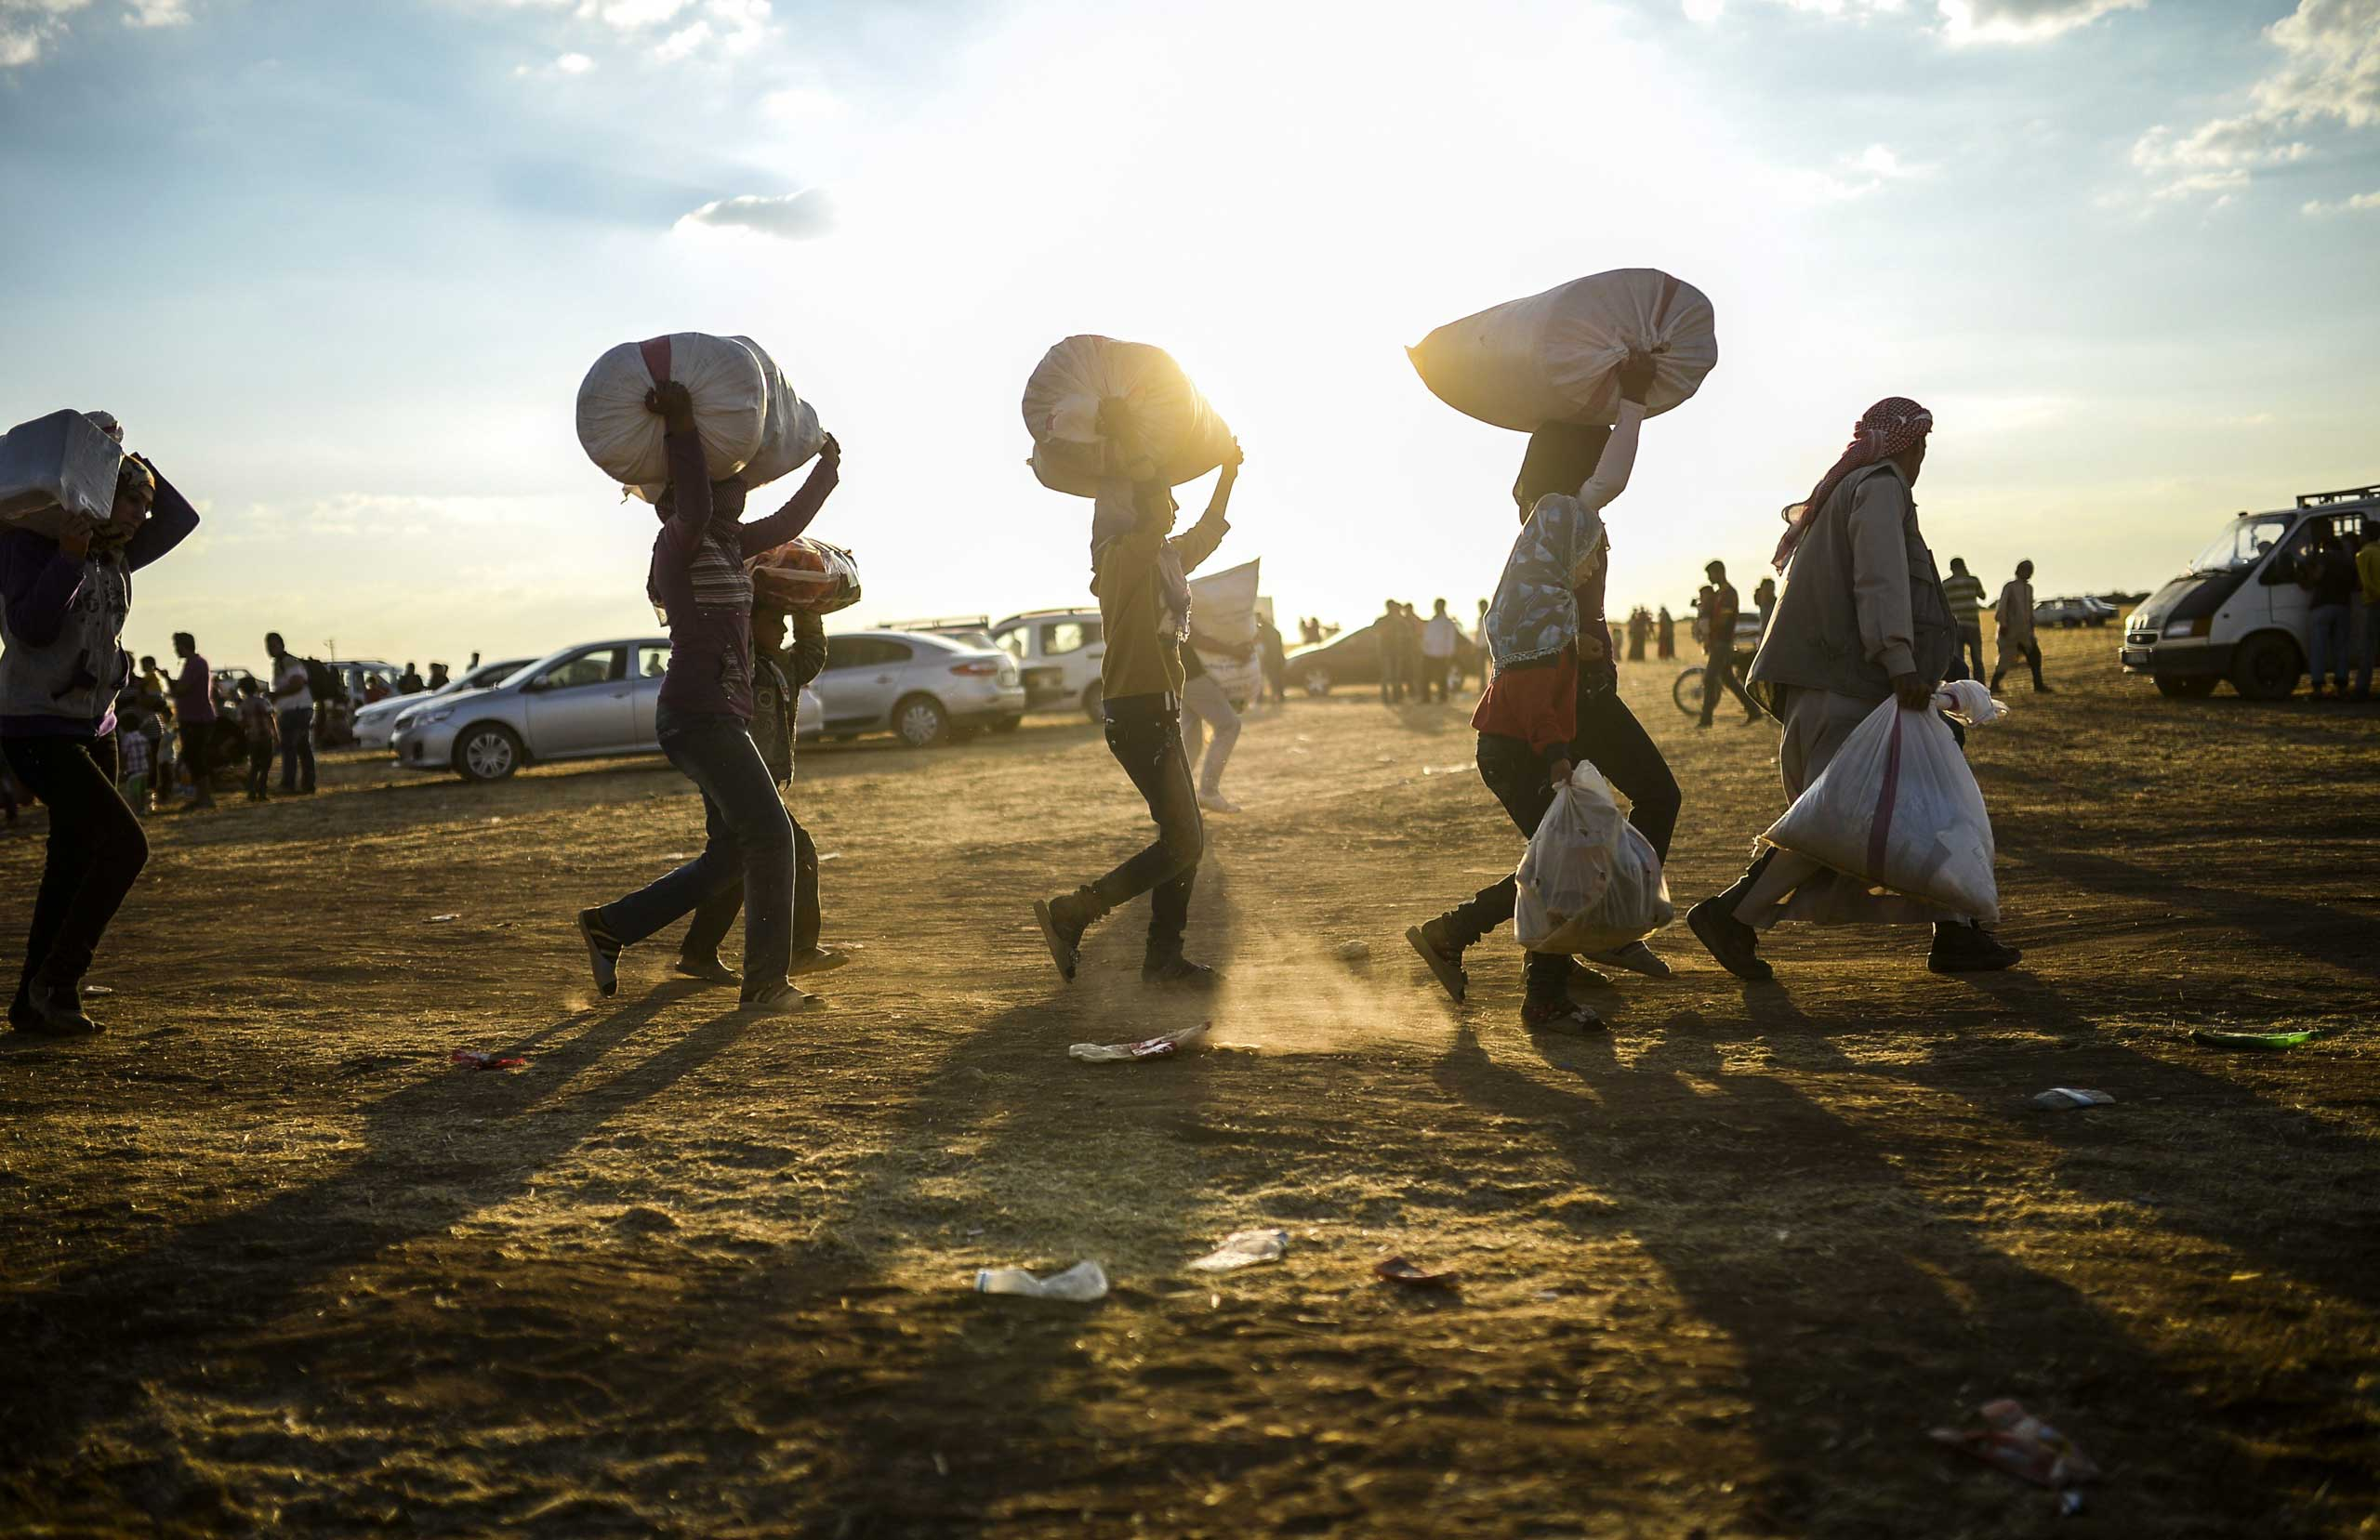 Syrian Kurds carry belongings as they cross the border between Syria and Turkey near the southeastern town of Suruc in Sanliurfa province, on Sept. 20, 2014.